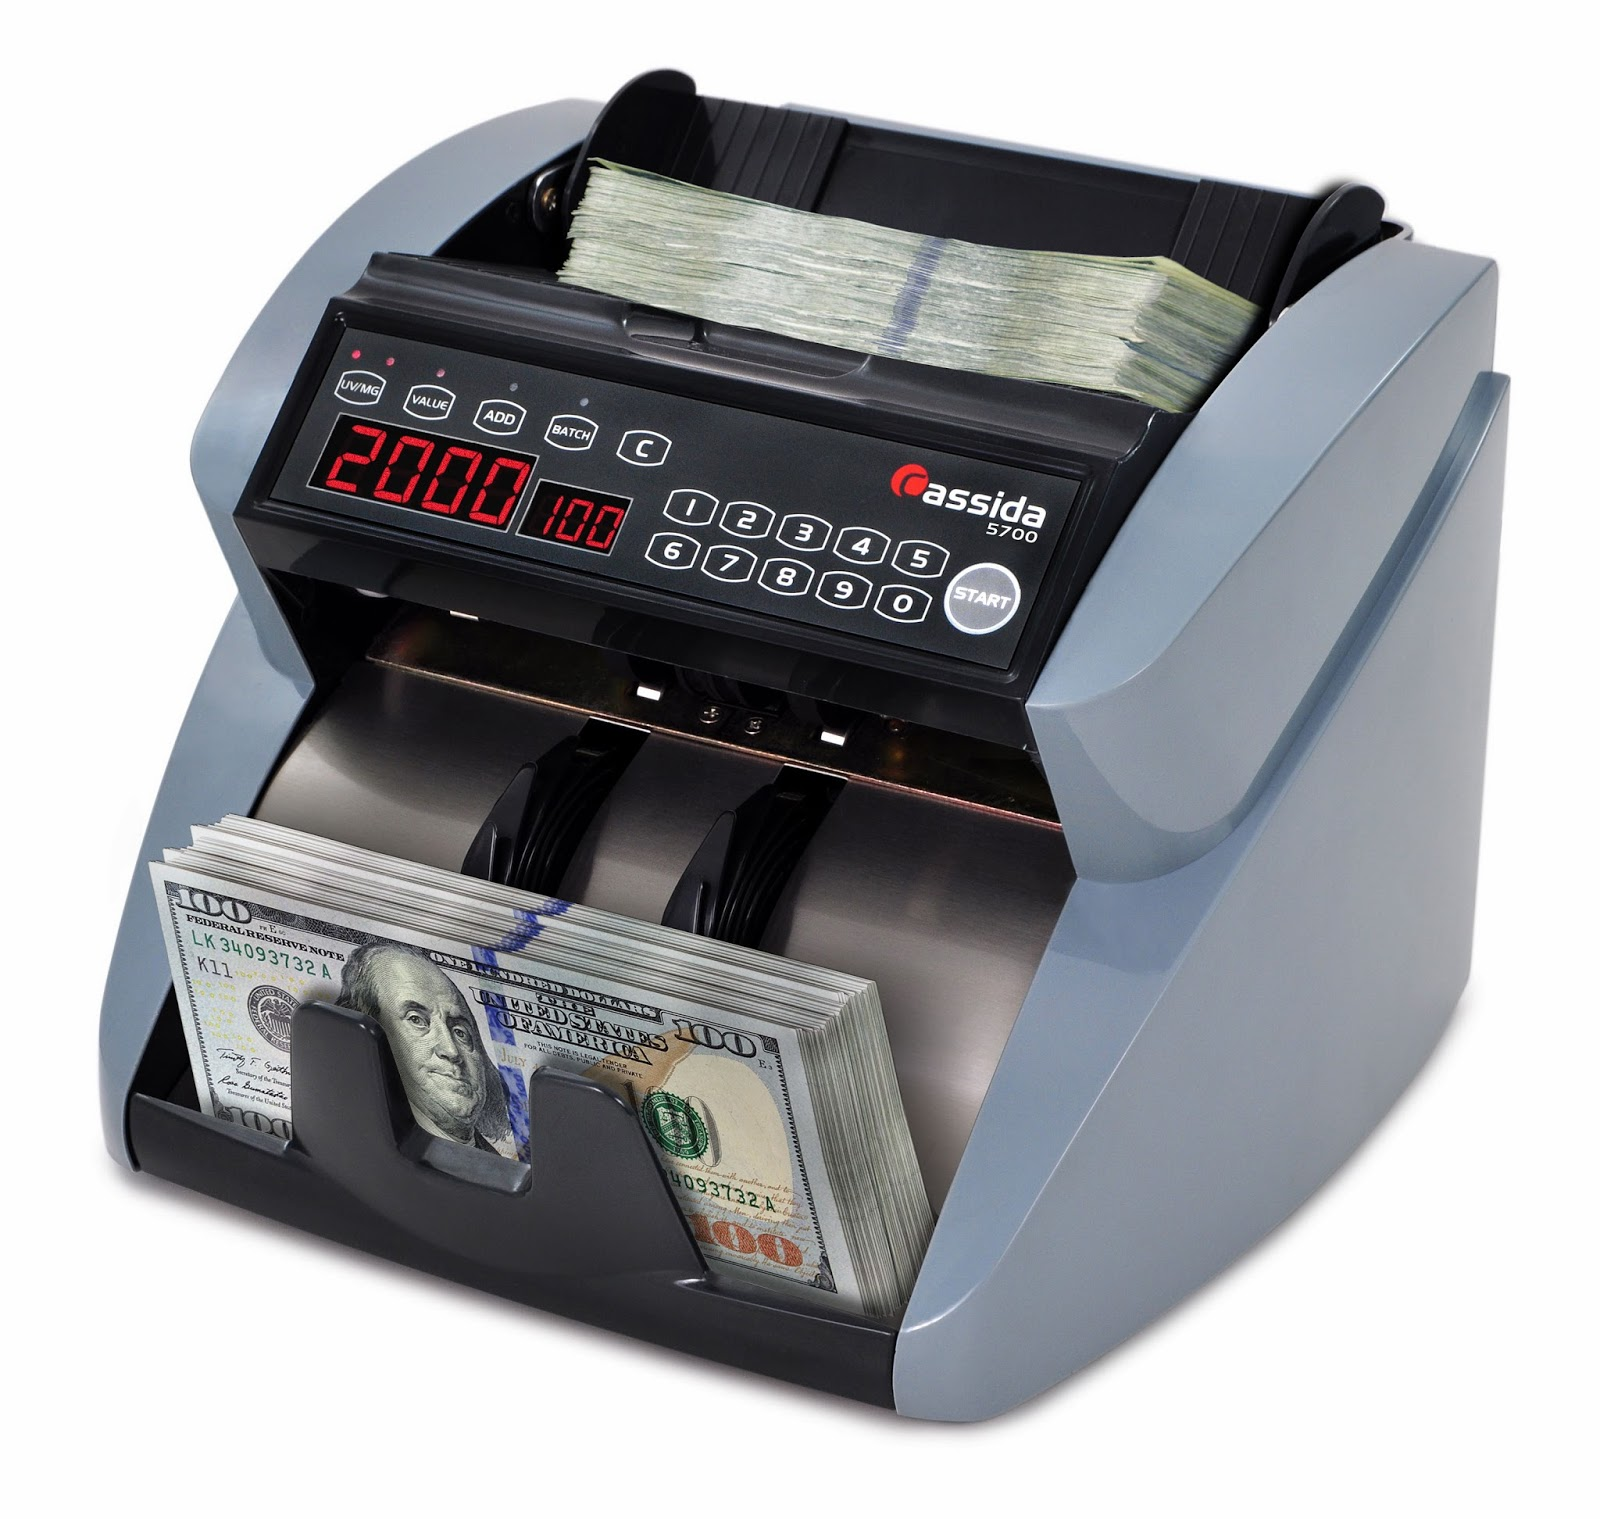 Cassida 5700 Money Counter